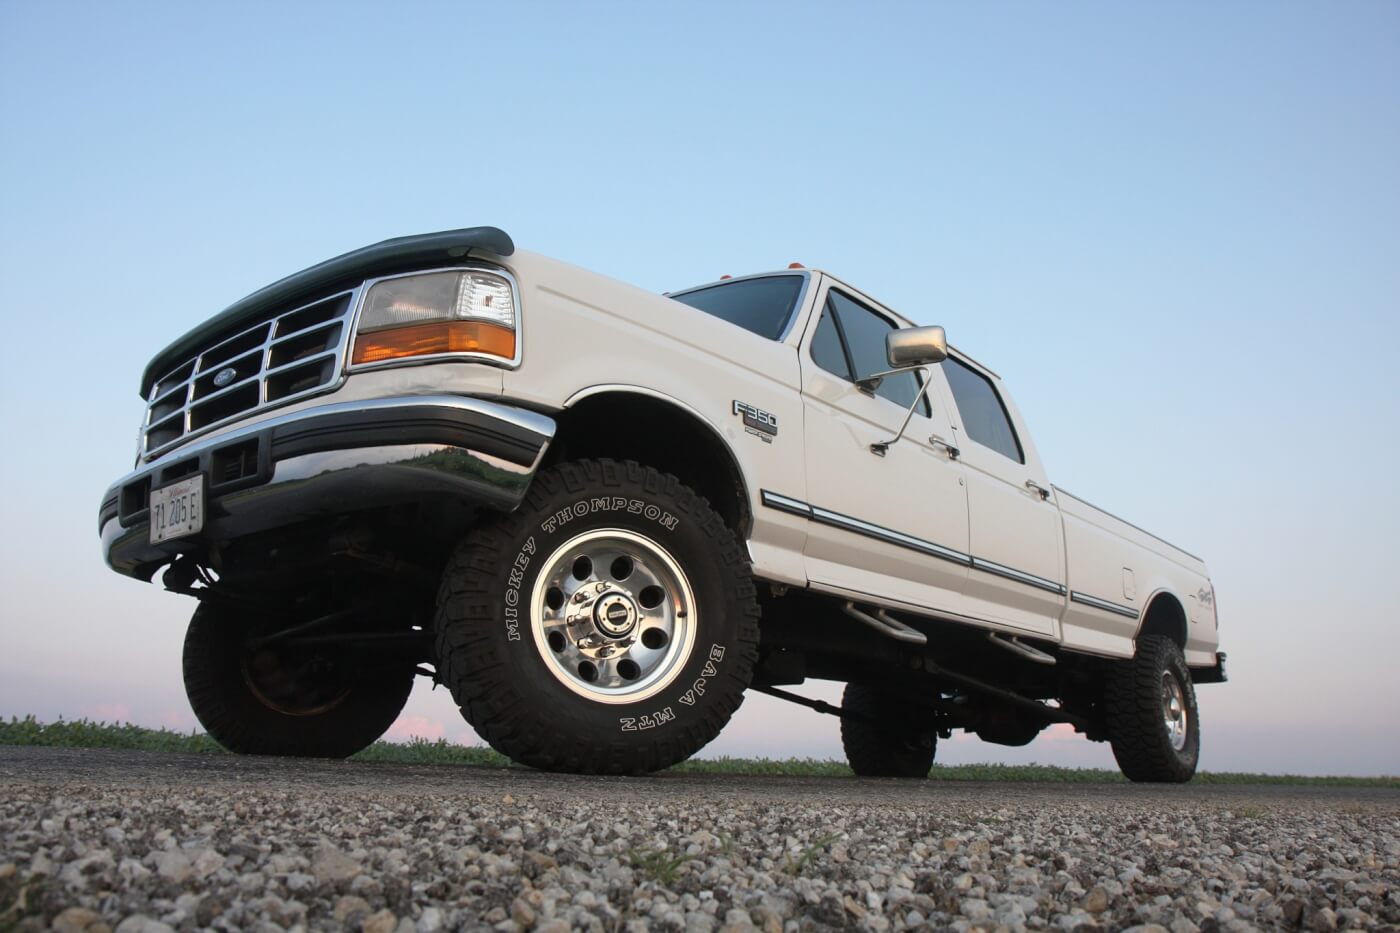 While our 1997 F-350 test mule had a parts combination capable of making 600-rwhp, the 195,000-mile stock bottom end 7.3L under the hood had to be tuned conservatively in order to stay in one piece, and remain a reliable daily driver. With an owner not yet willing to spend money on a built engine, not wanting to bump up timing any more (harder on parts), yet wanting to go faster, there was really only one thing left to try. And that's exactly how the idea for this test was born.